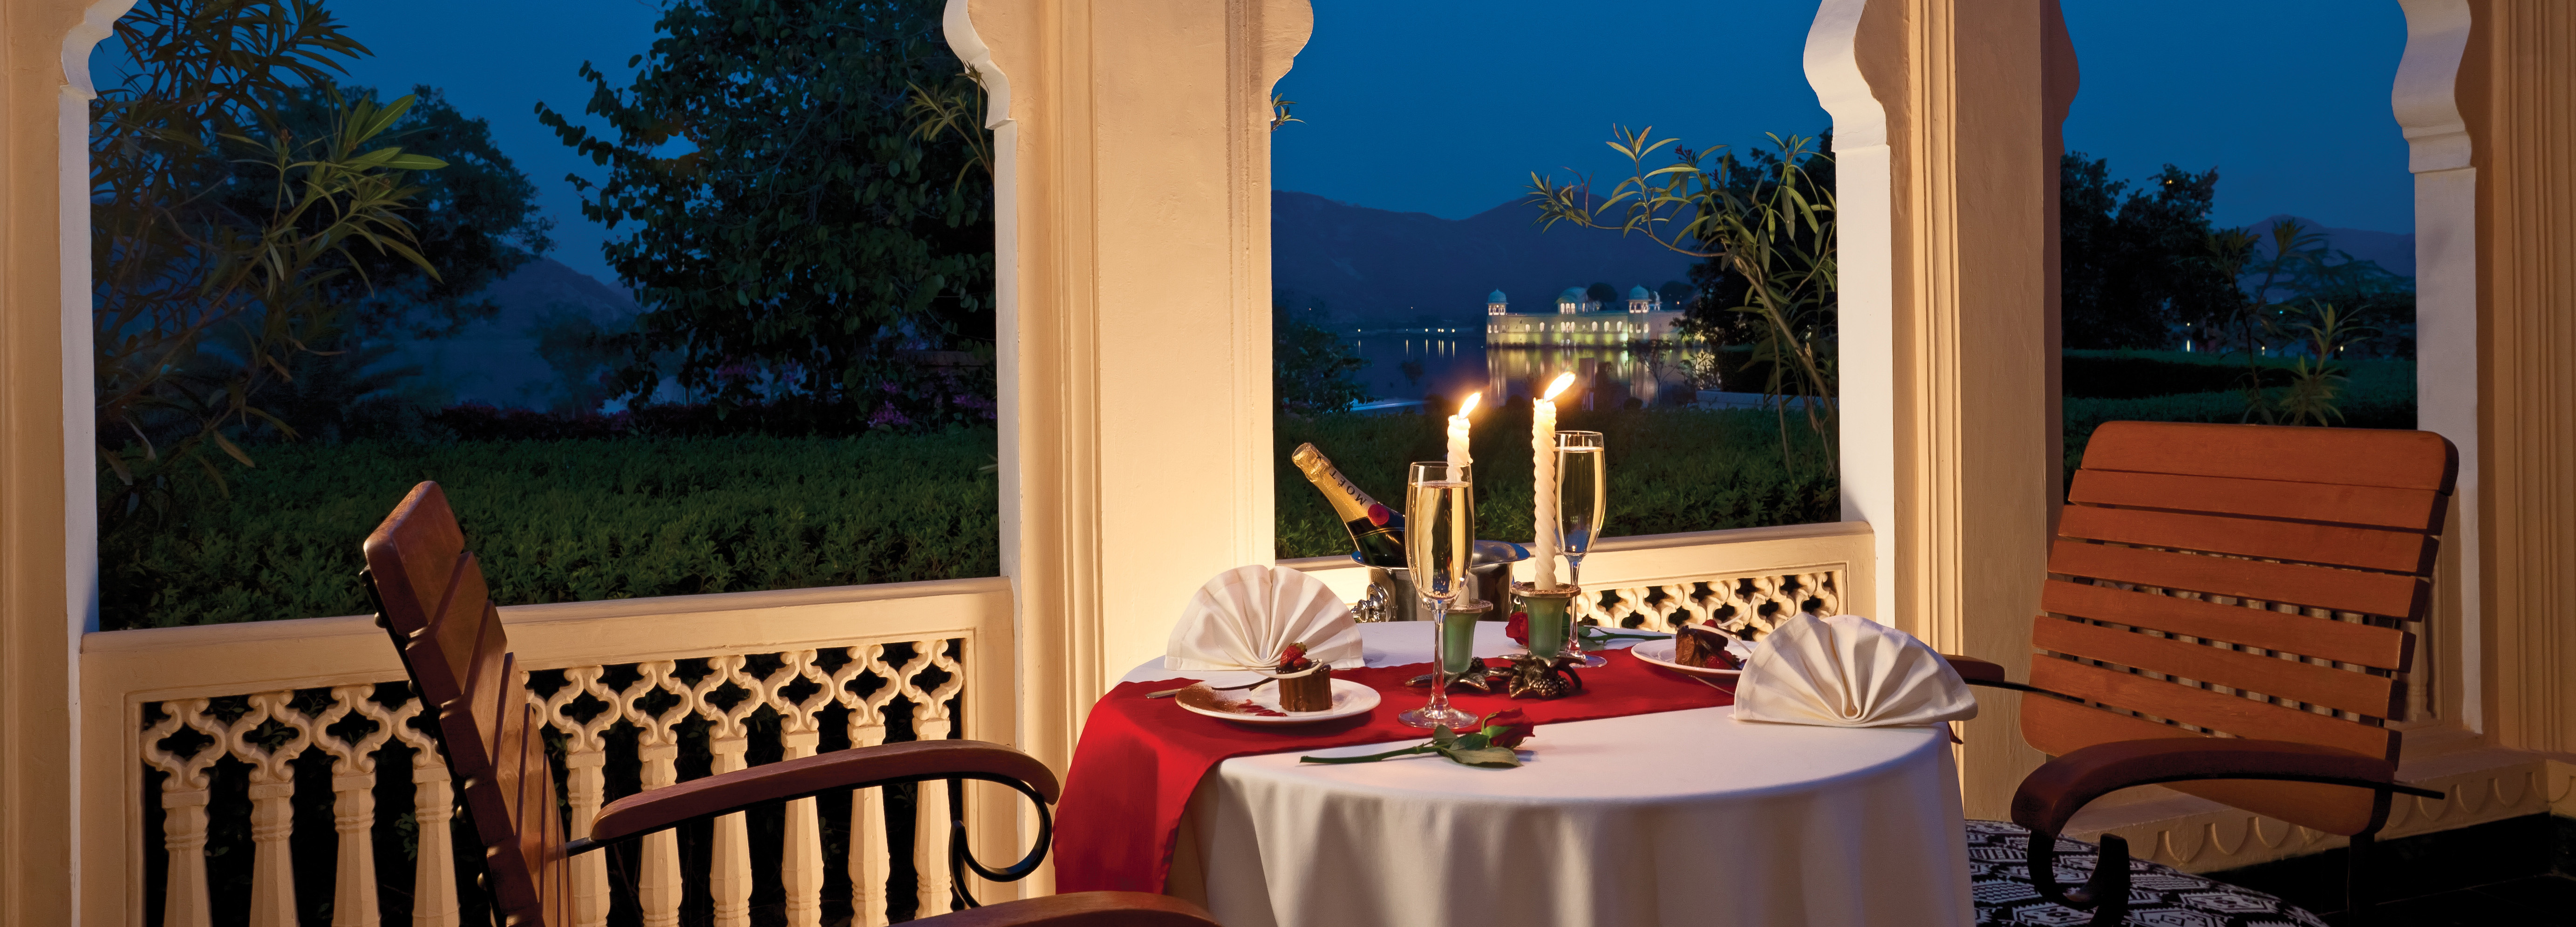 lake-view-dining-terrace-jaipur